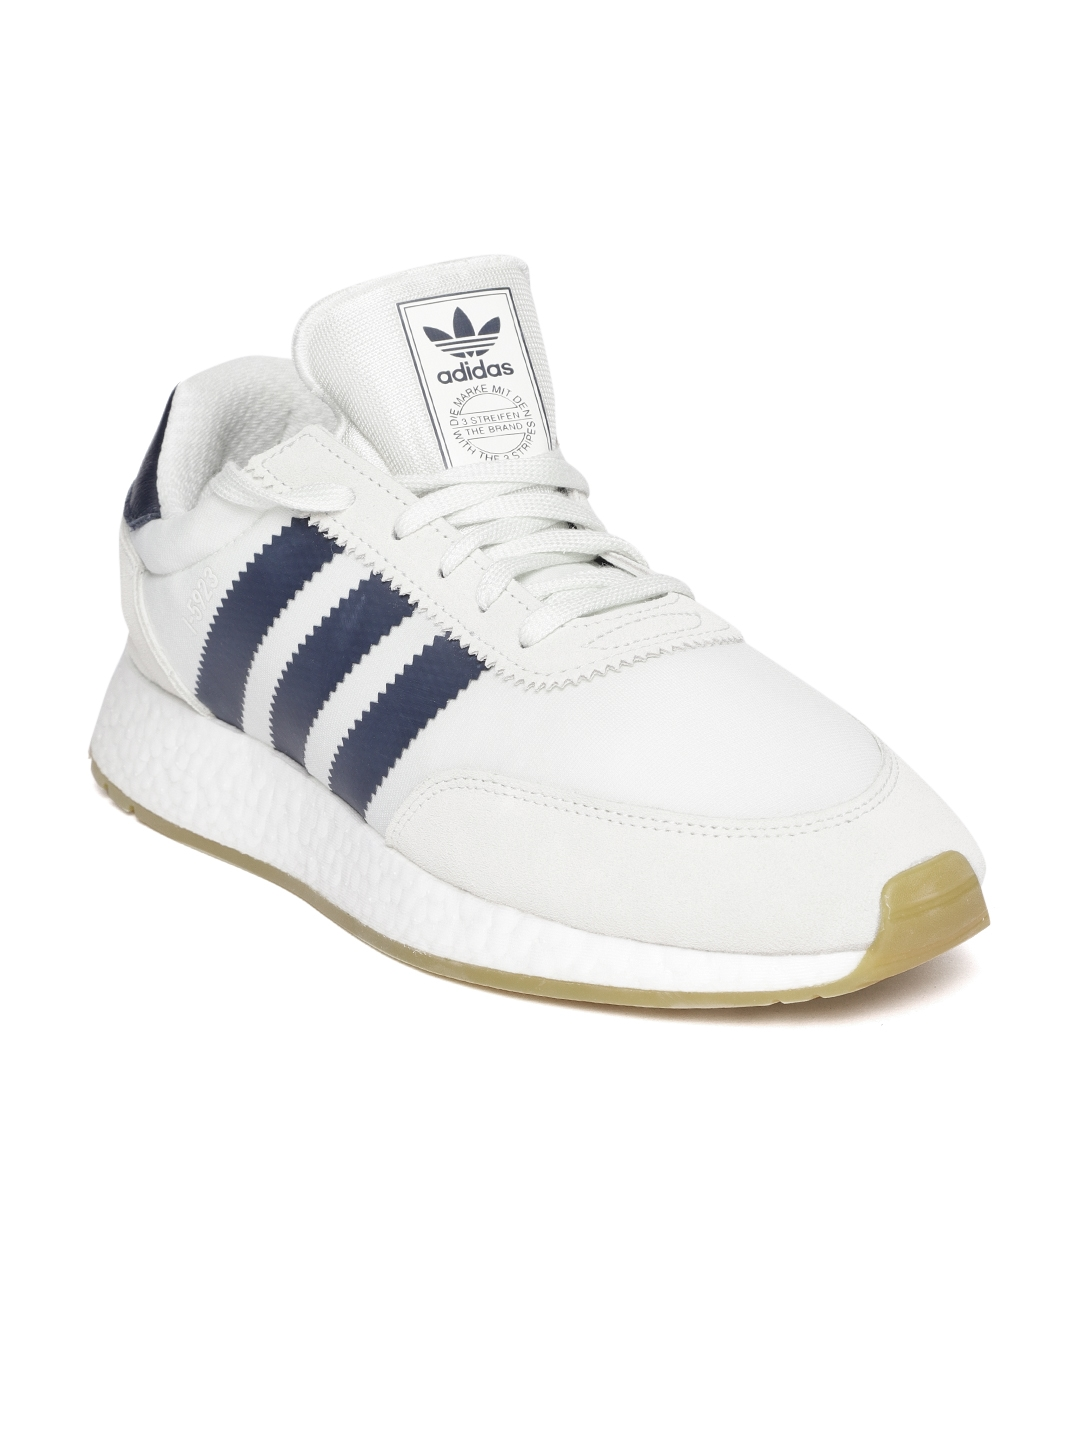 6cccdca0 ADIDAS Originals Men Off-White I-5923 Sneakers